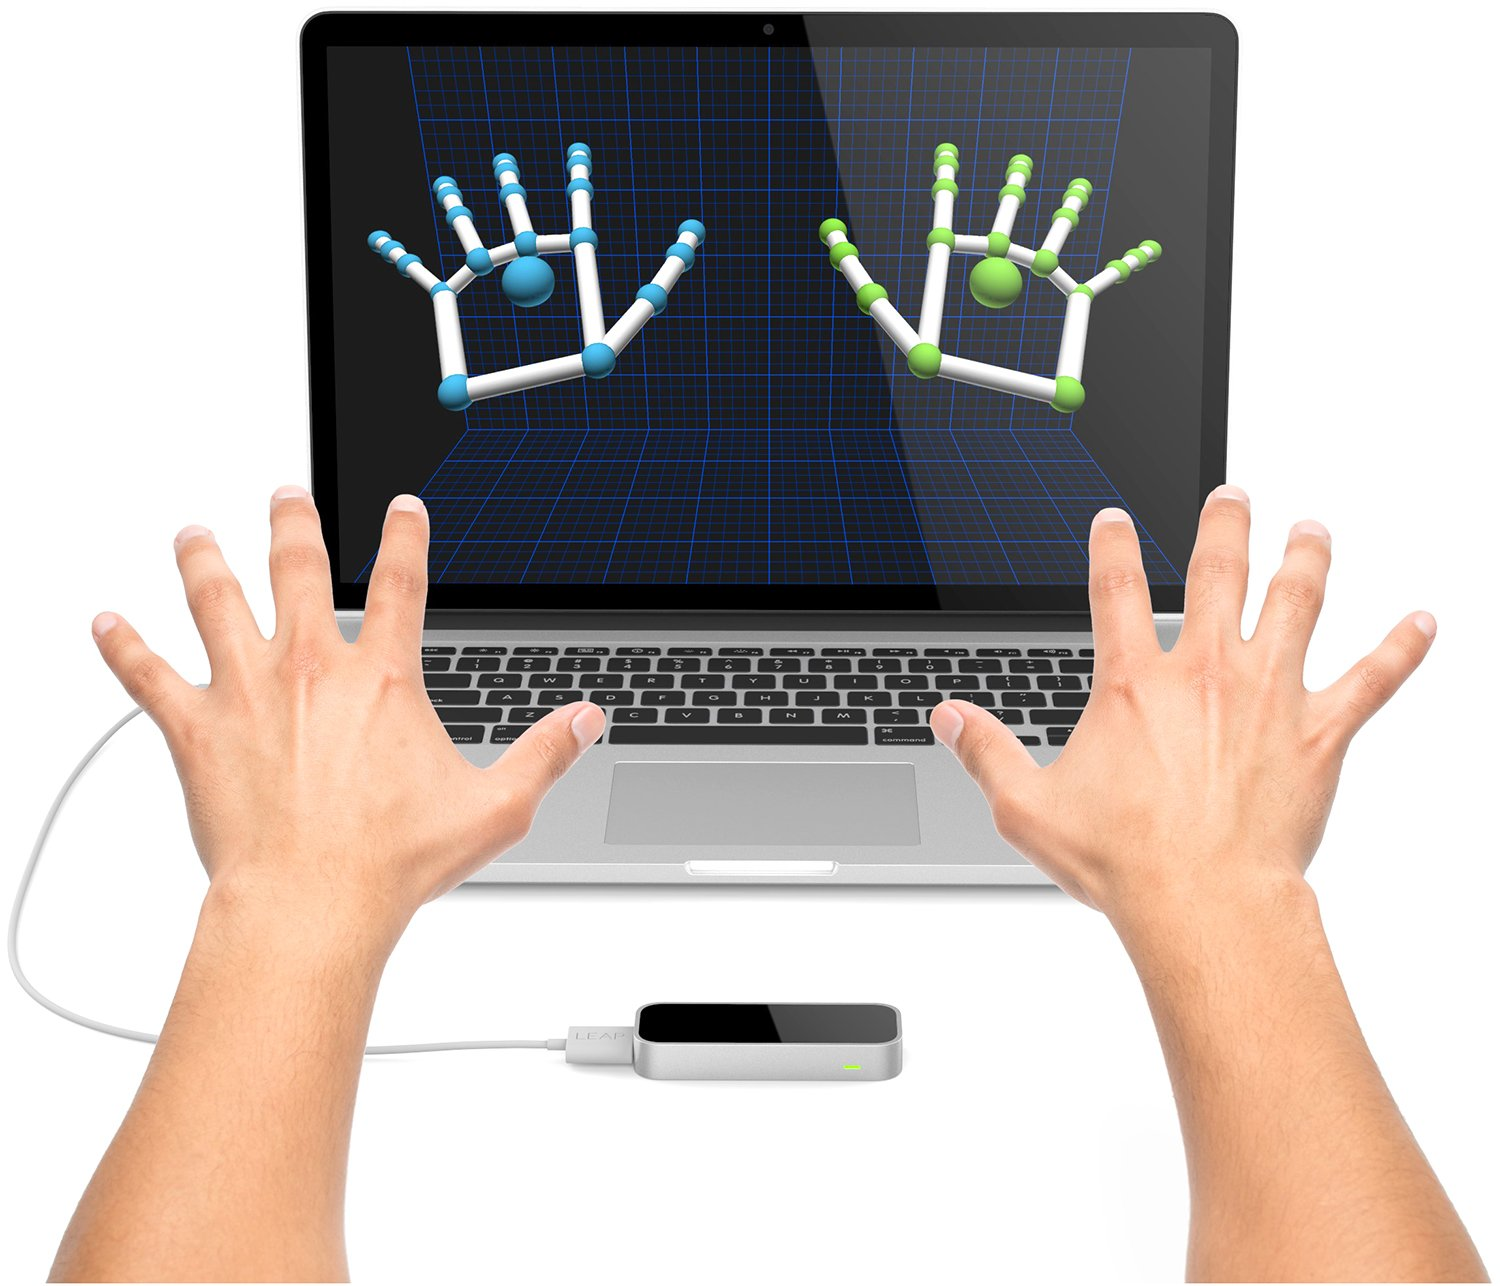 cos'è il leap motion